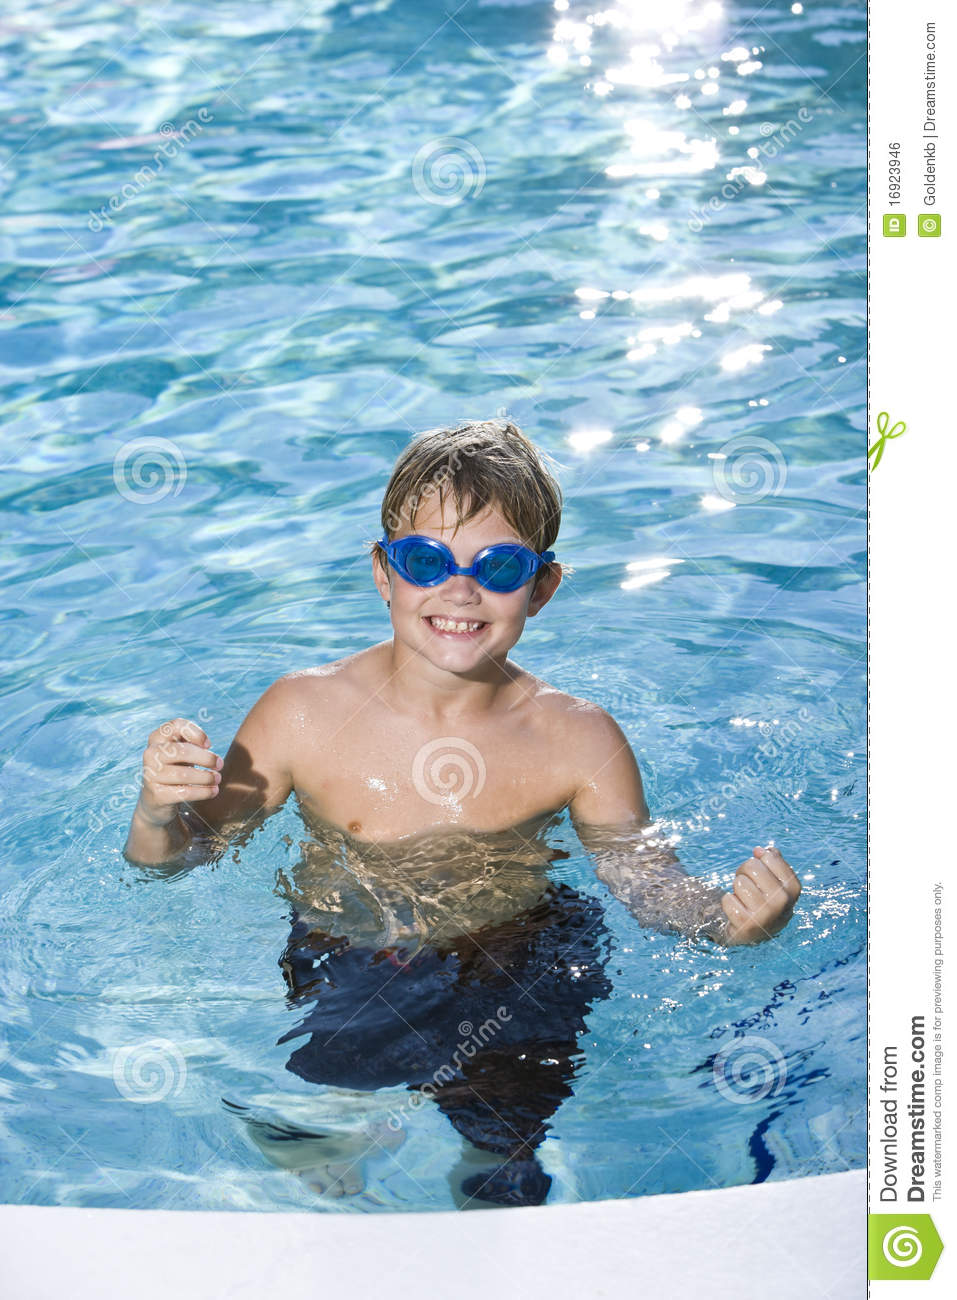 Free Swimming Pool: Boy With Goggles In Swimming Pool Stock Photo